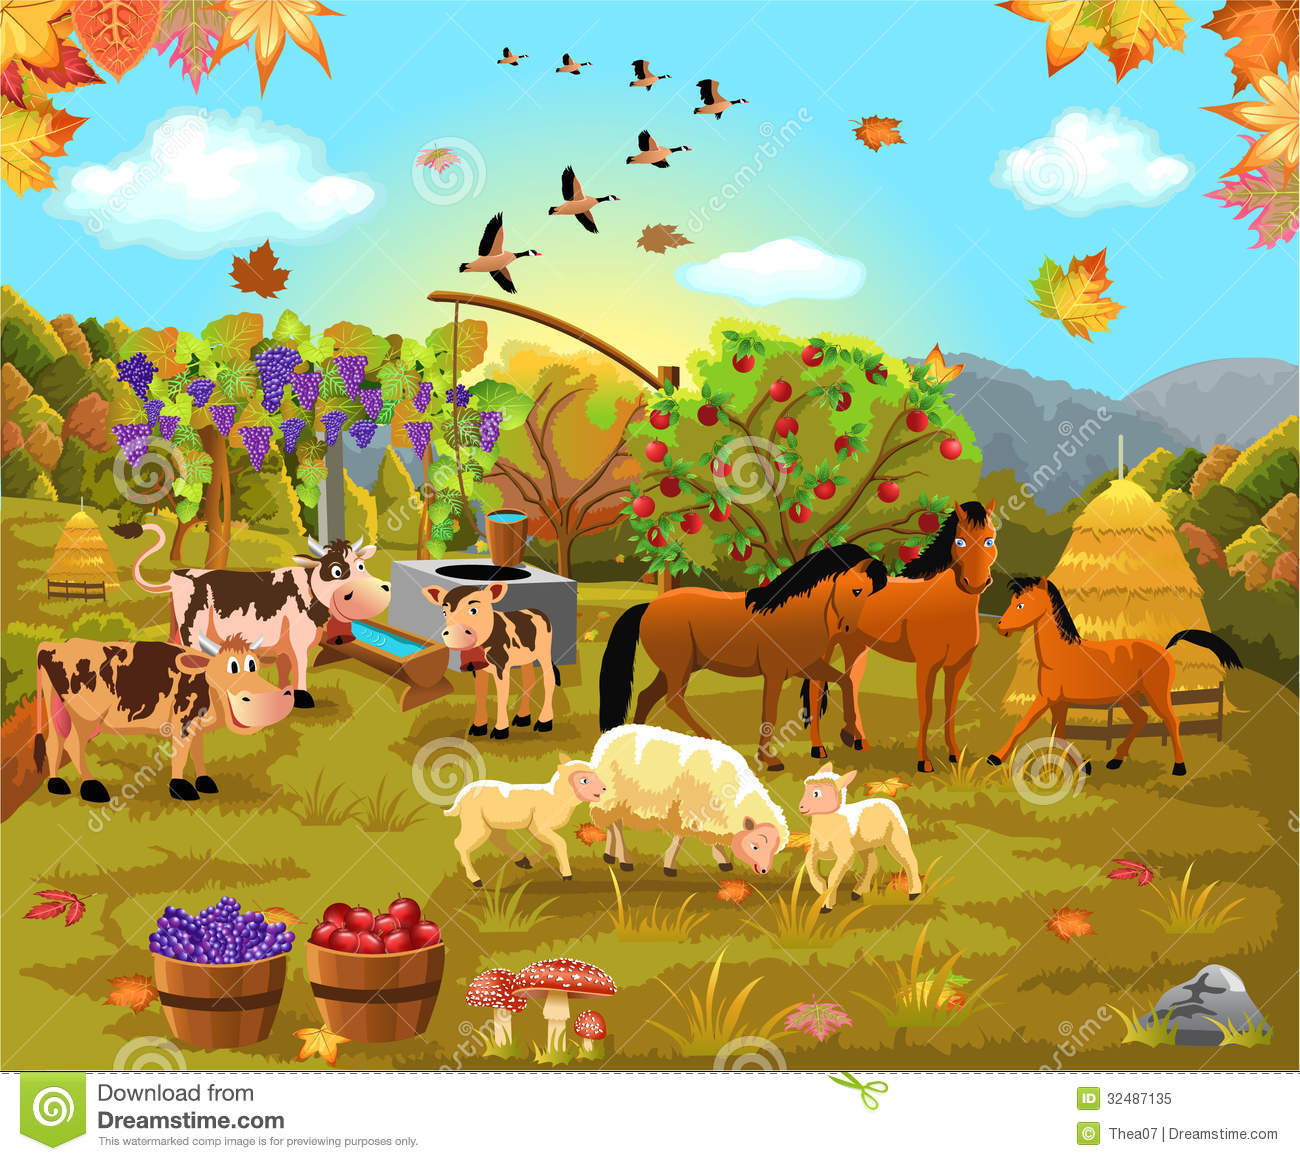 Cute Curious George Wallpaper Farm Animals In The Autumn Field Stock Vector